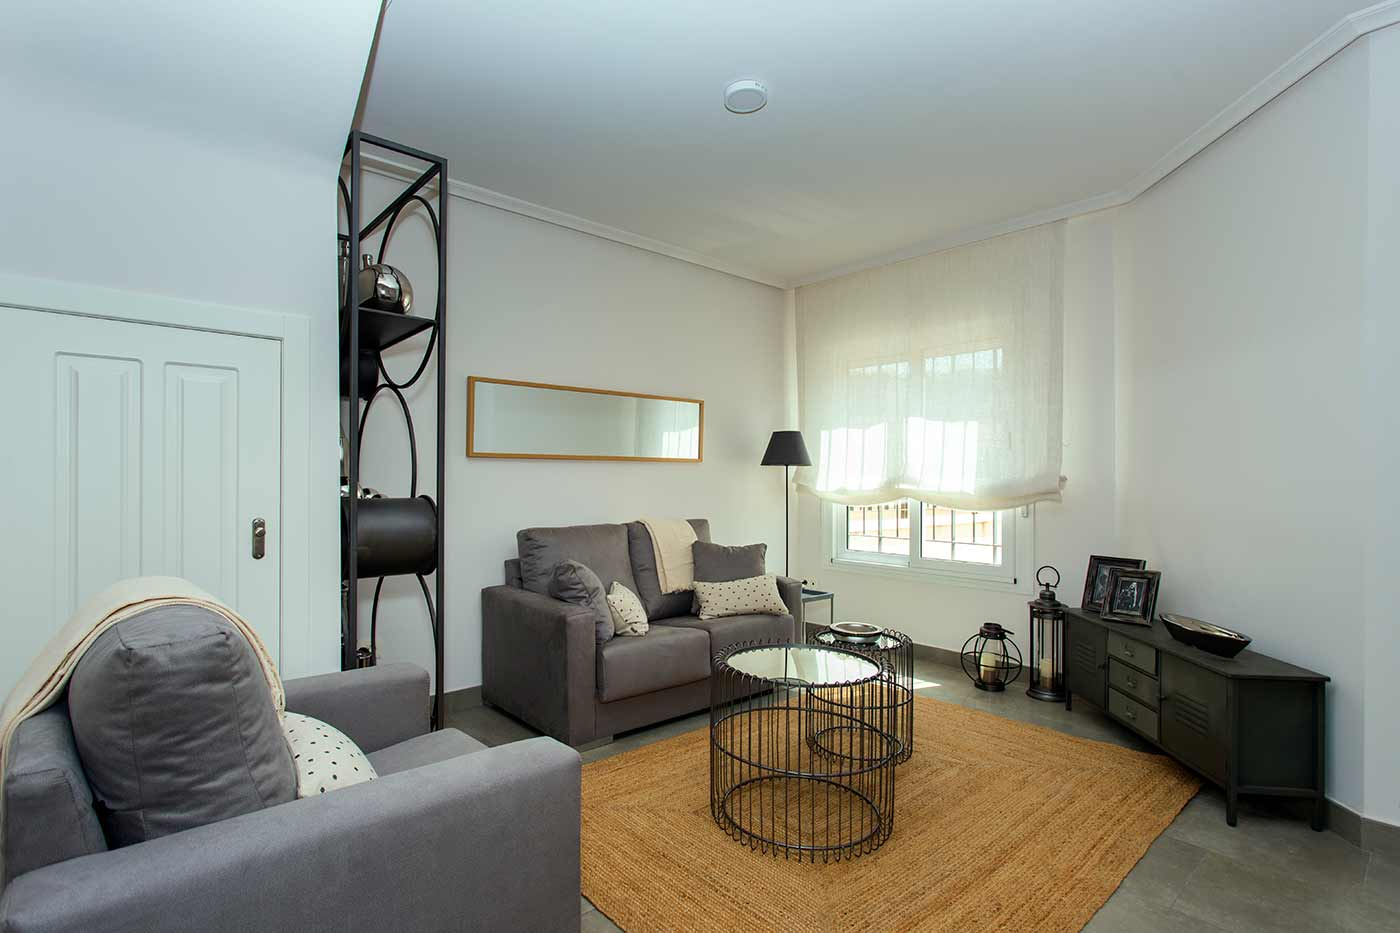 3 bed Townhouse in Santa Pola - Town image 3